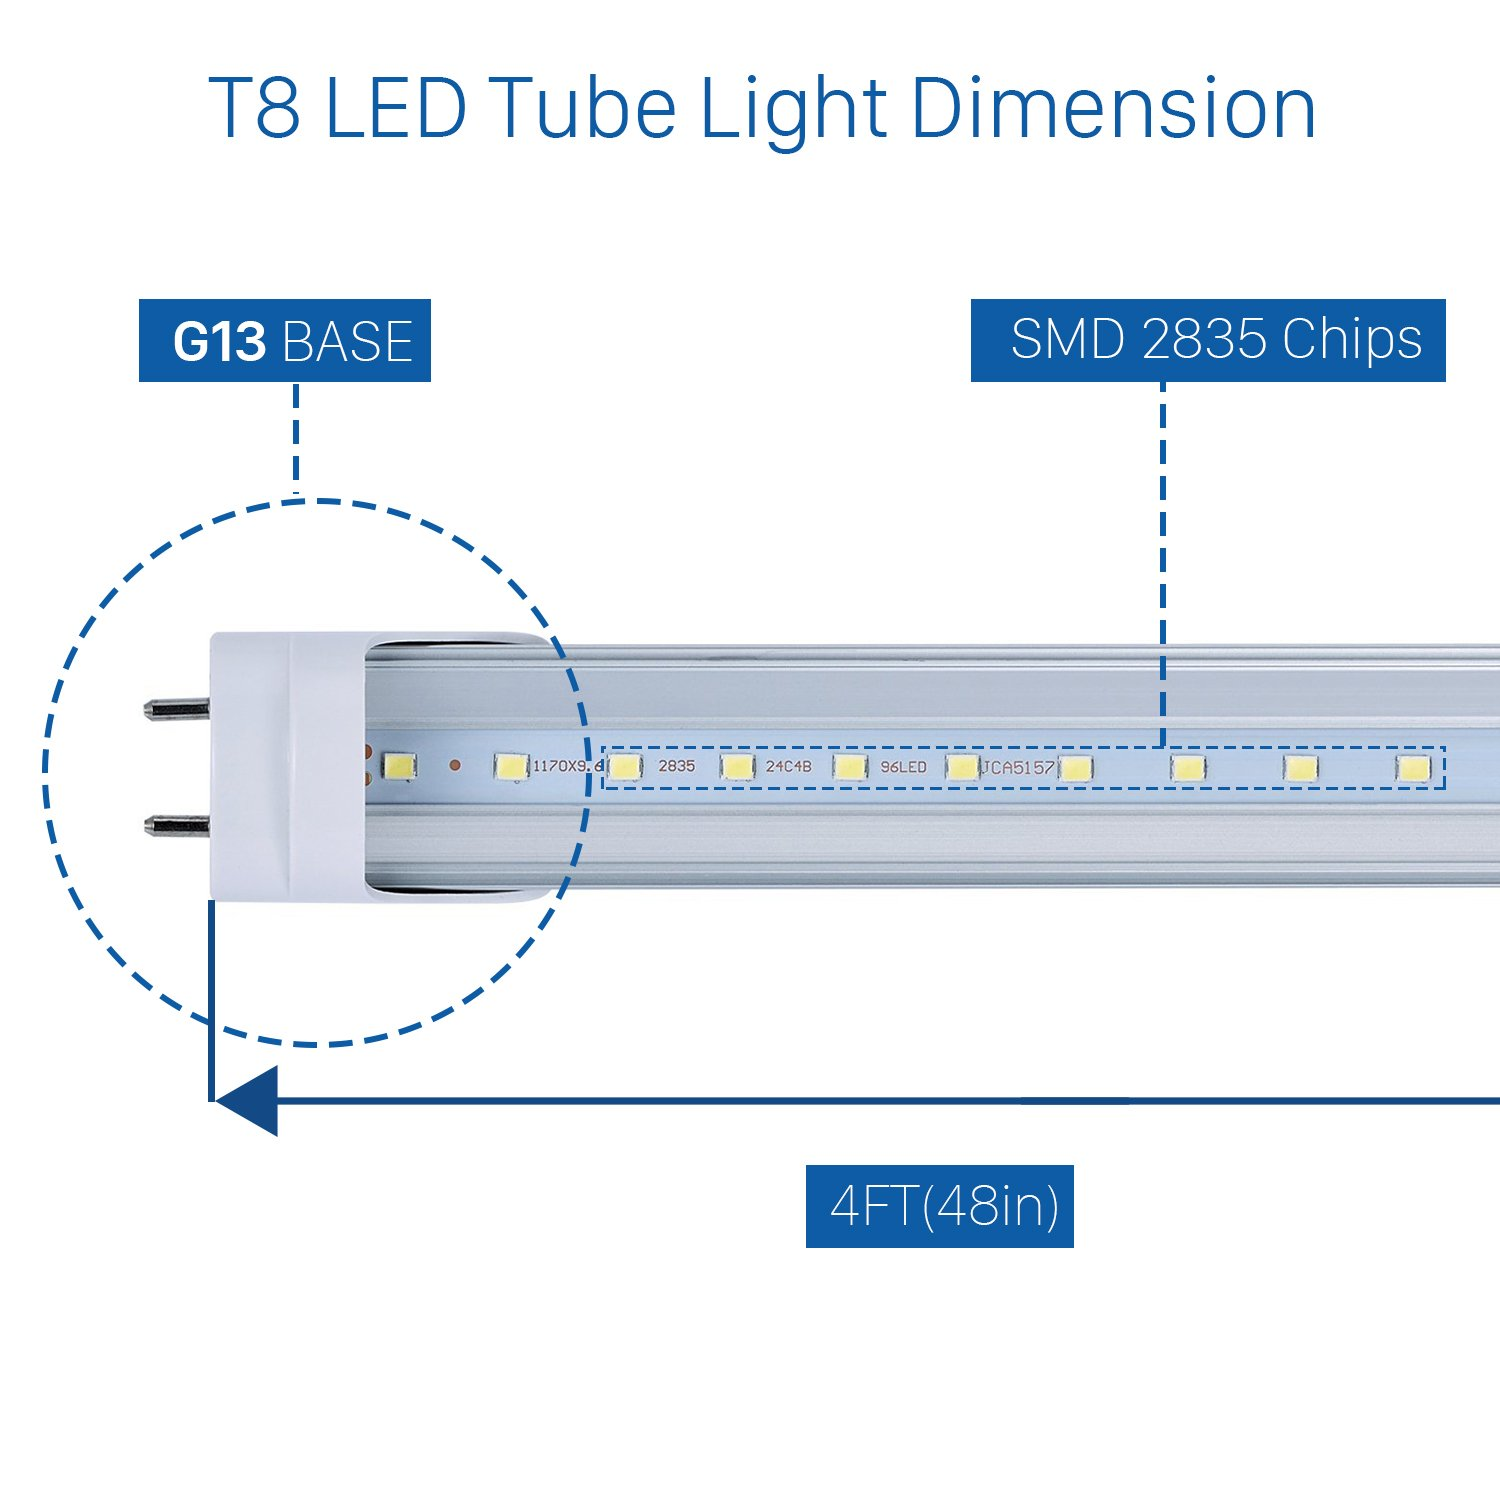 T8 Led Tube Light Wiring Diagram Free Picture - Wiring ... G Wiring Diagram For Led Tubes on